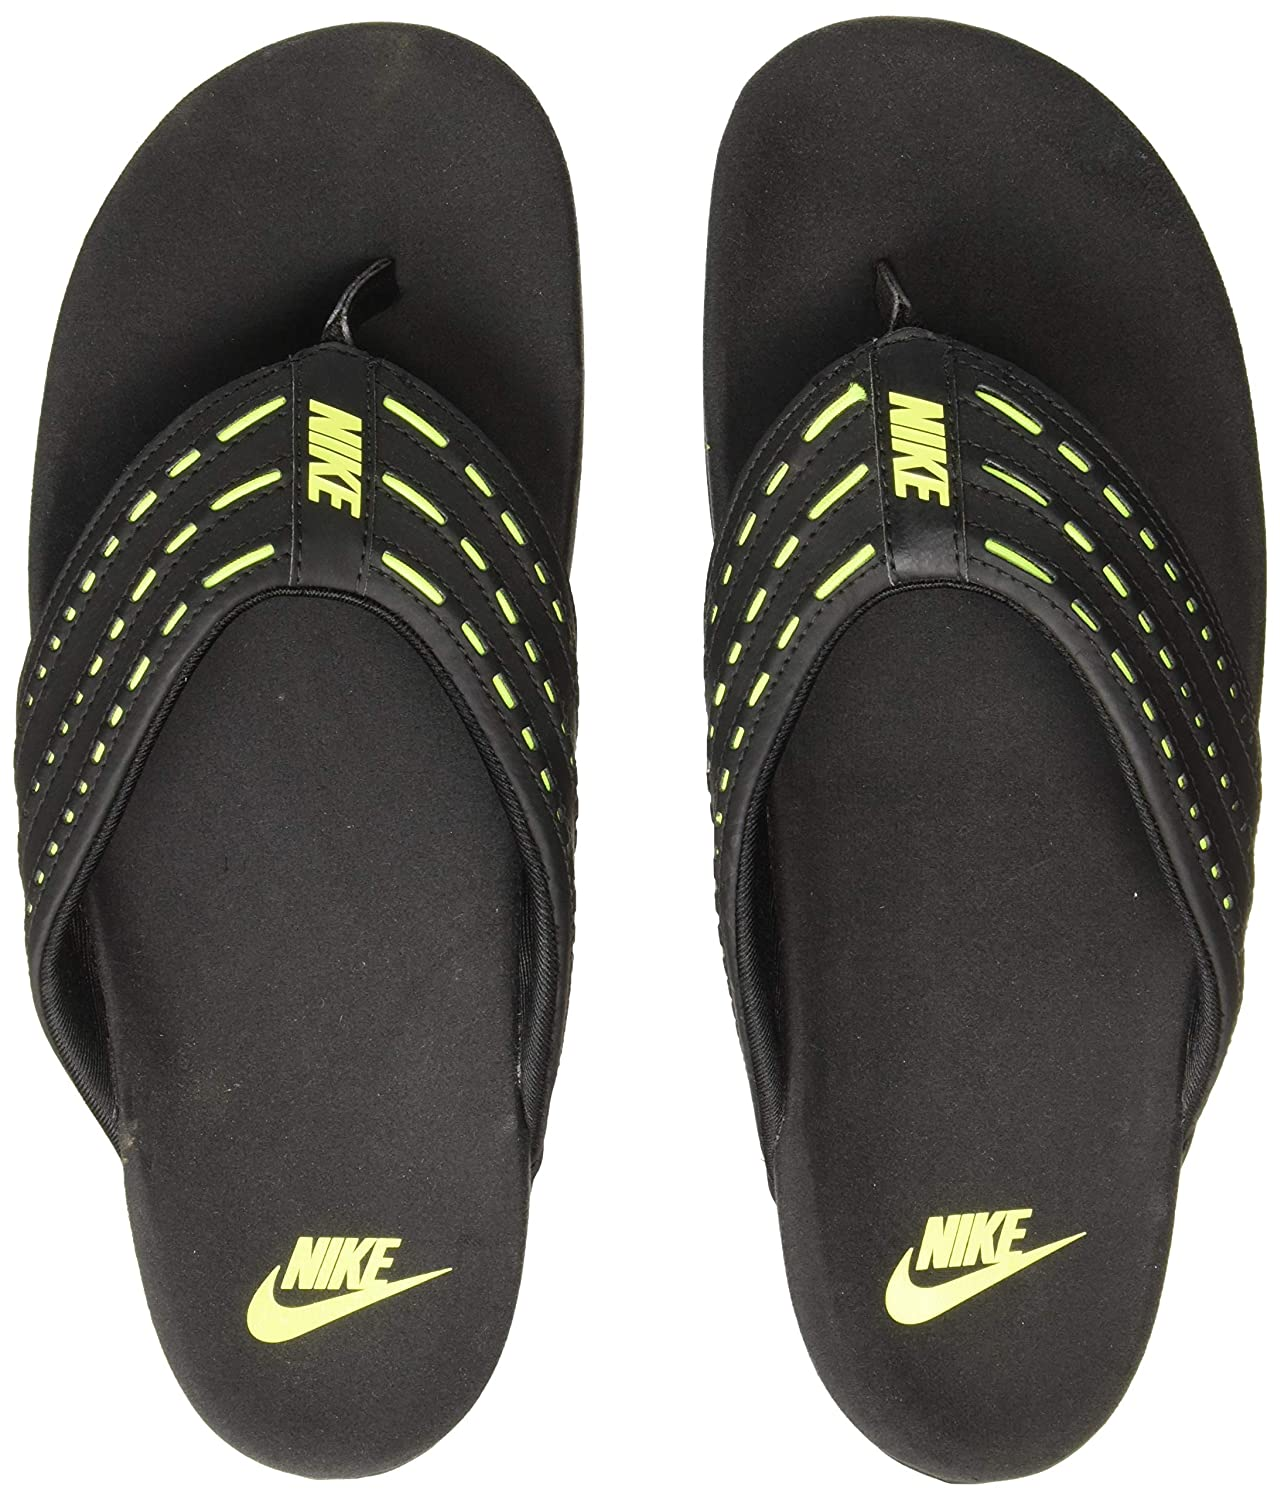 652c4ac97999 Nike Men s KEESO Black Volt Flip Flops Thong Sandals-5.5 UK 38.5 Euro  (749160-001)  Buy Online at Low Prices in India - Amazon.in